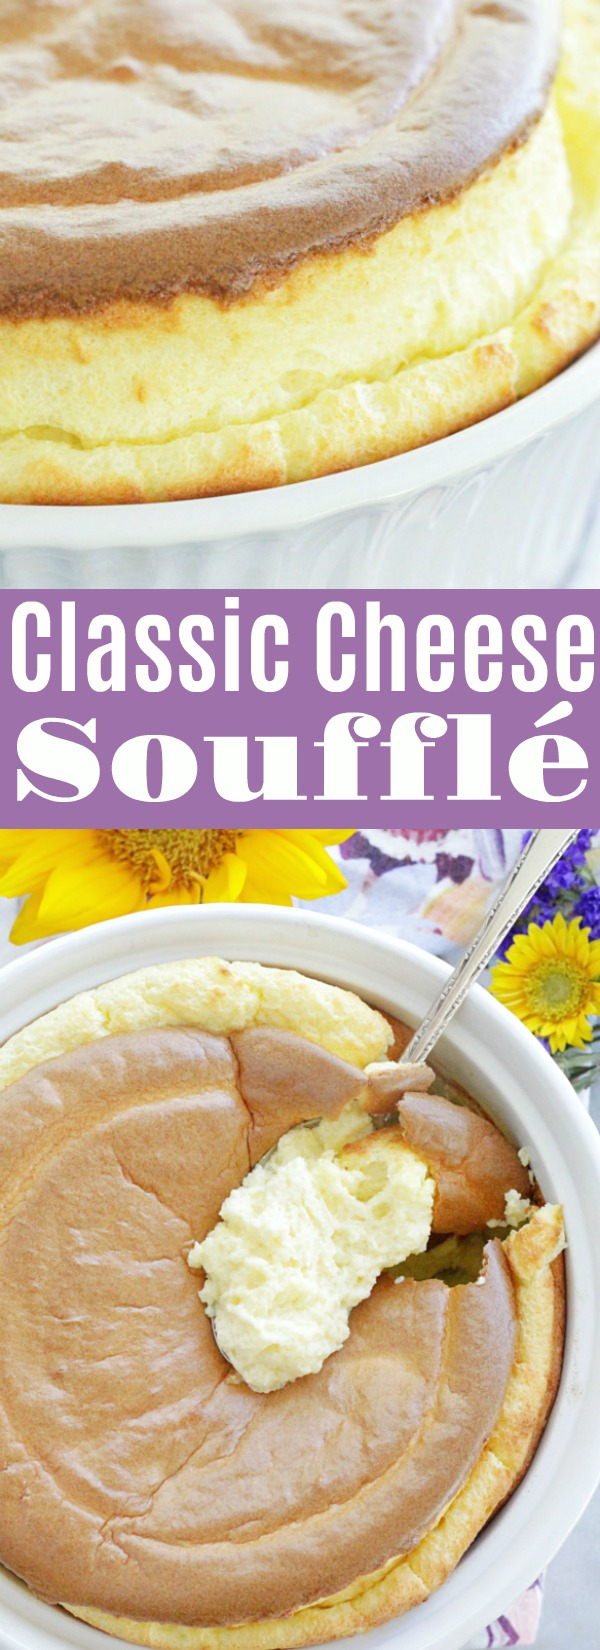 Classic Cheese Soufflé | Foodtastic Mom